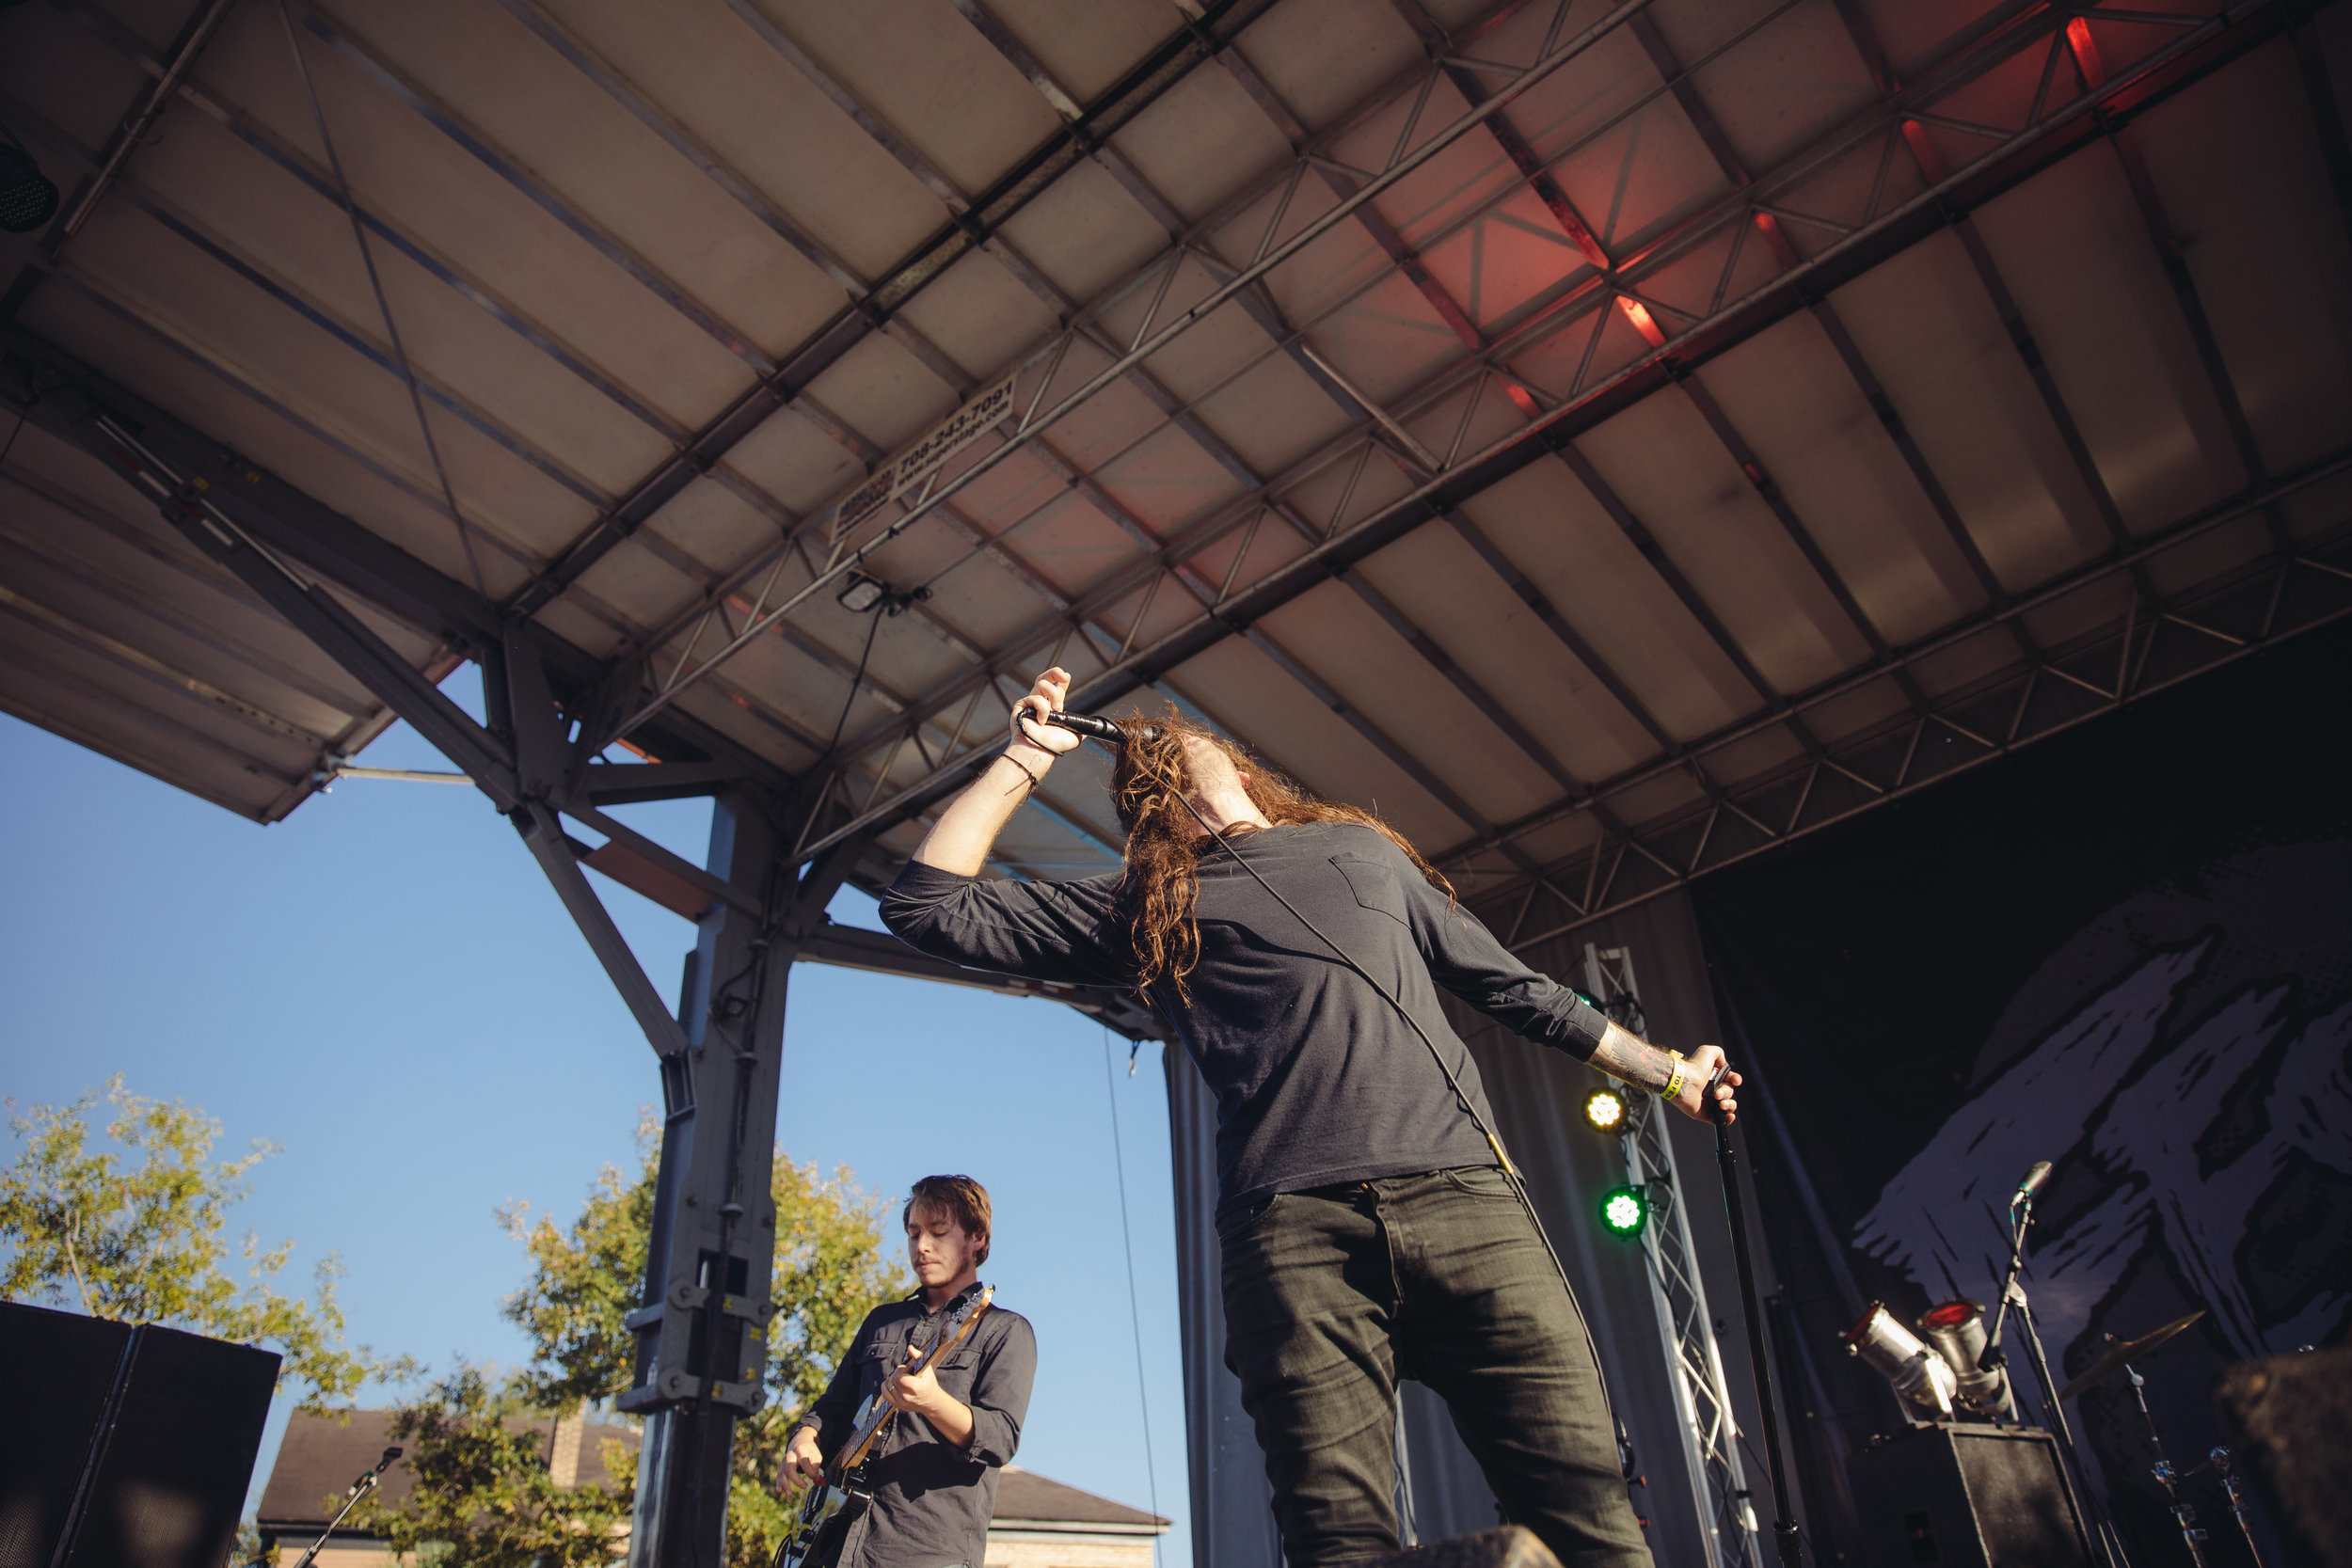 pianos-become-the-teeth---fest-14_22918889789_o.jpg